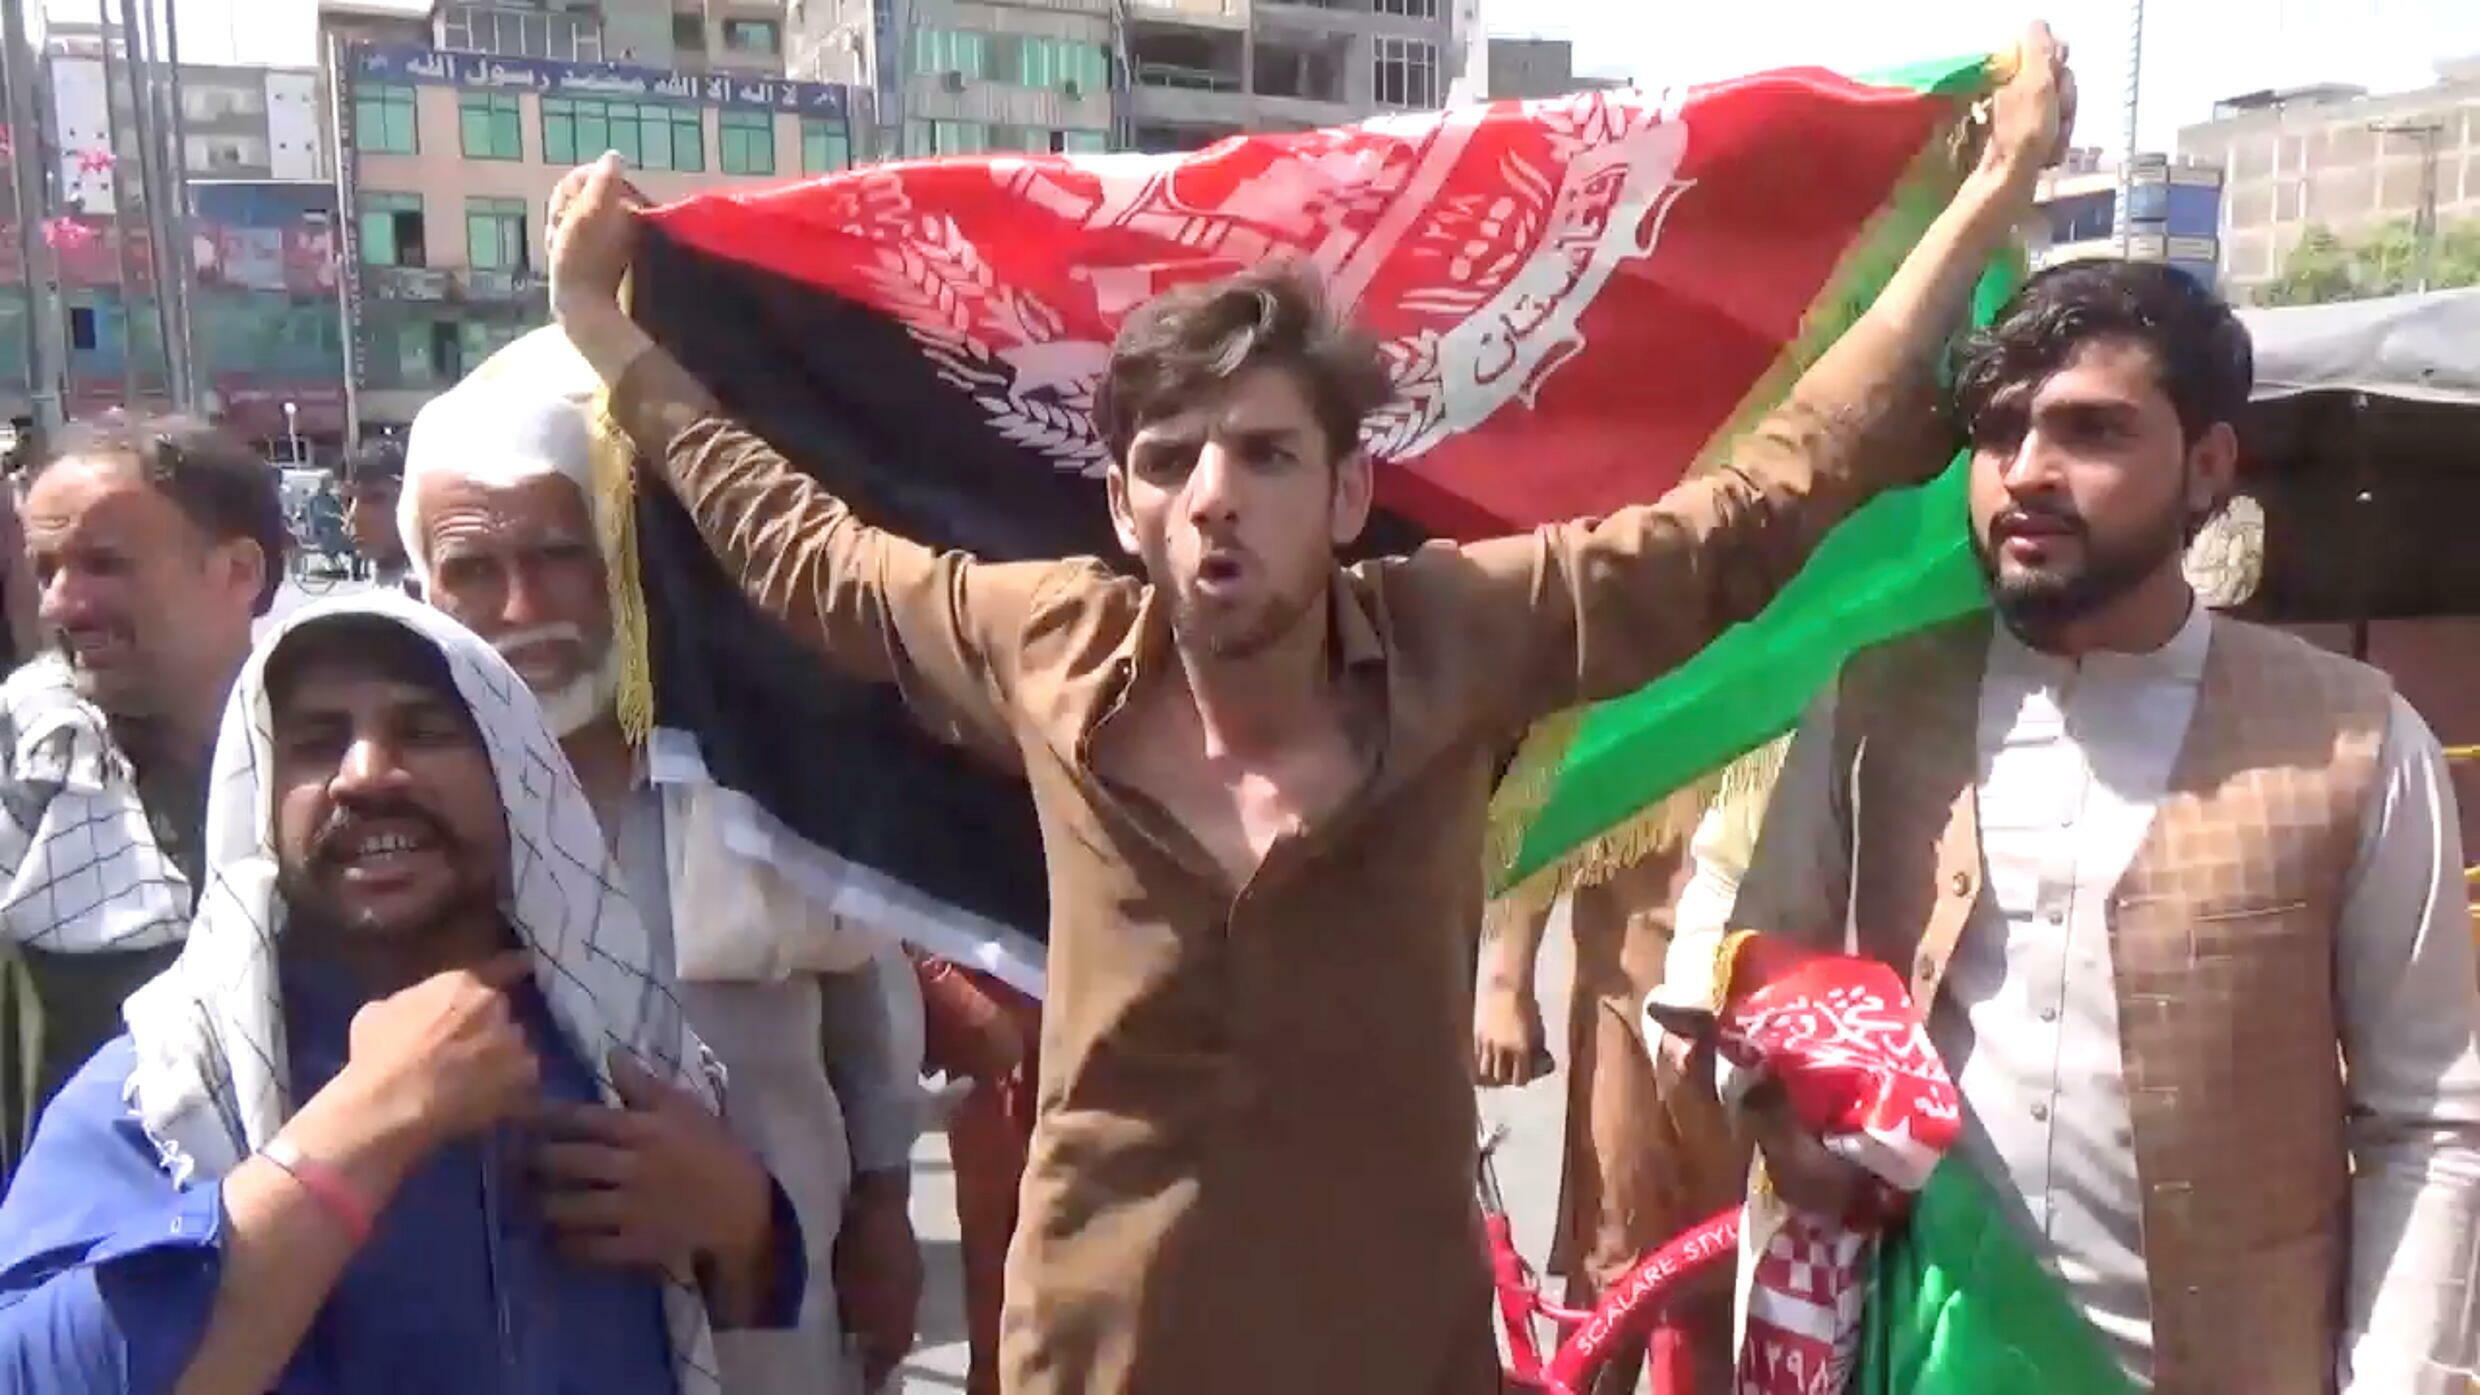 2021-08-18T152152Z_1533745400_RC2R7P9UQ7XA_RTRMADP_3_AFGHANISTAN-CONFLICT-PROTESTS